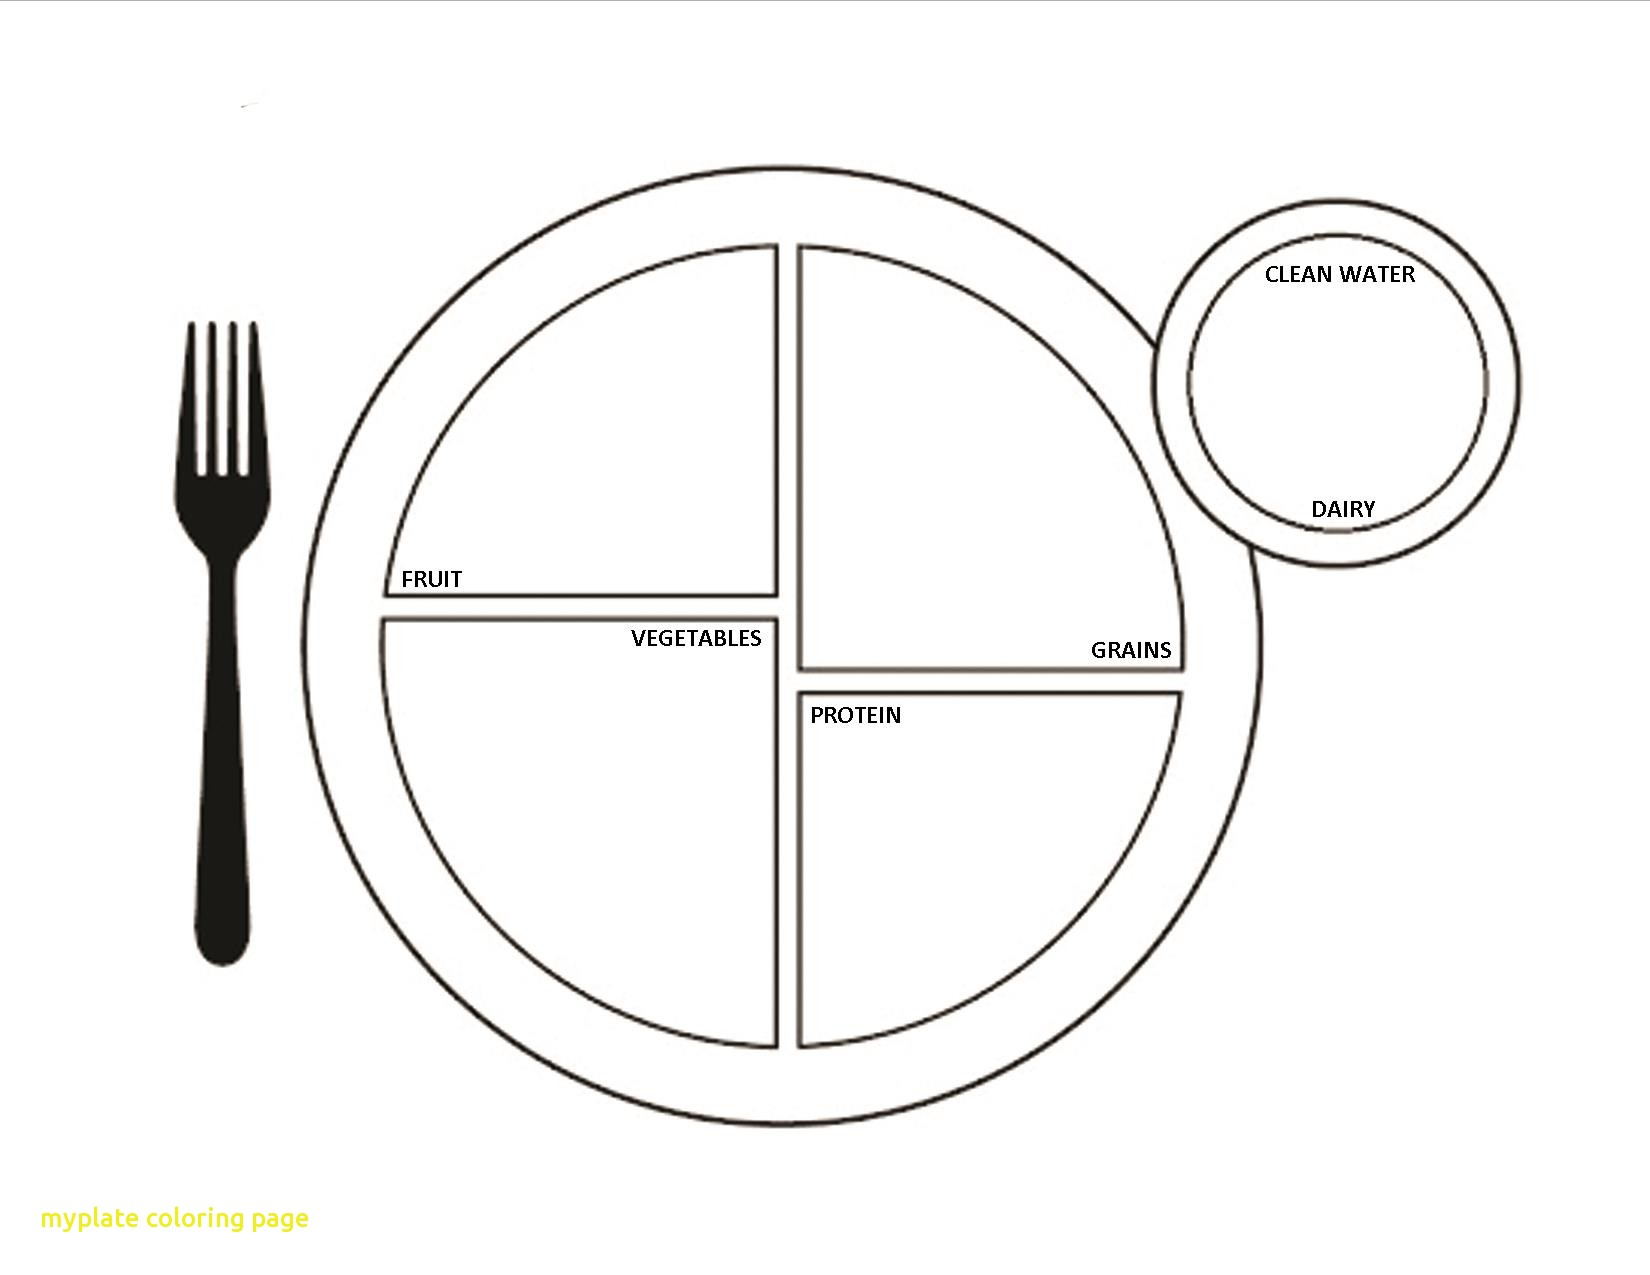 1650x1275 Myplate Coloring Page With My Plate Coloring Page